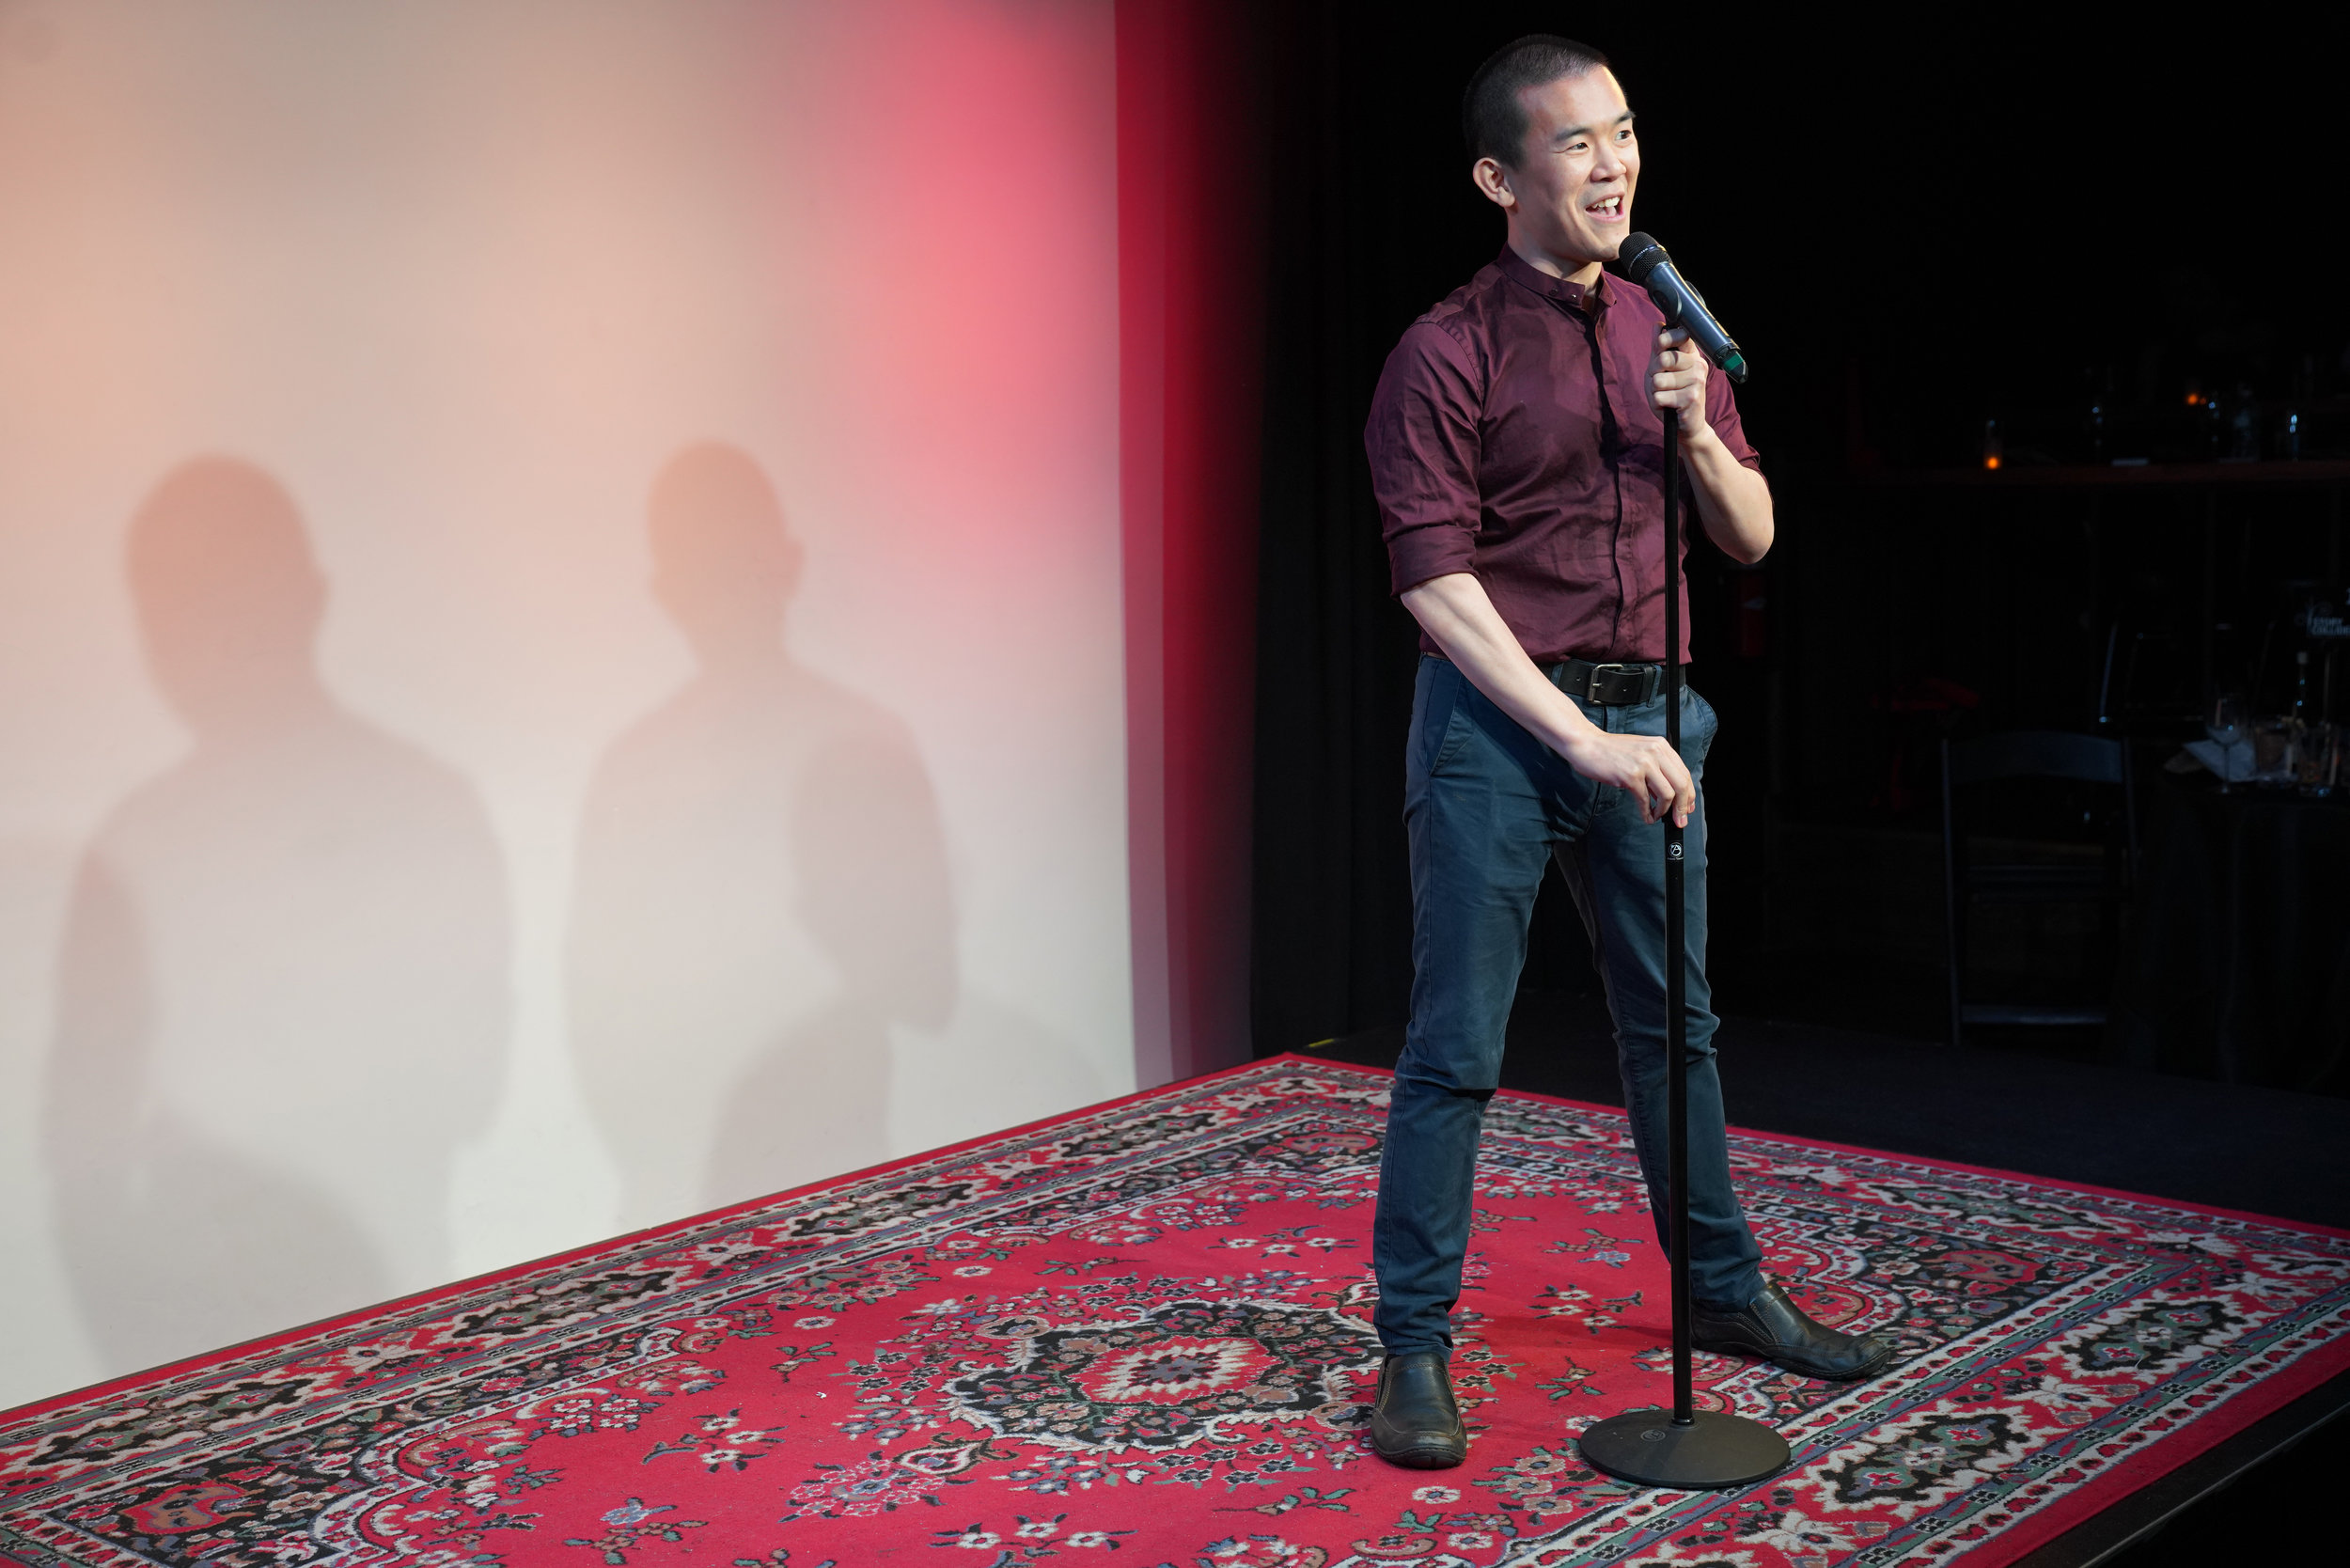 Ed Yong, host with the most